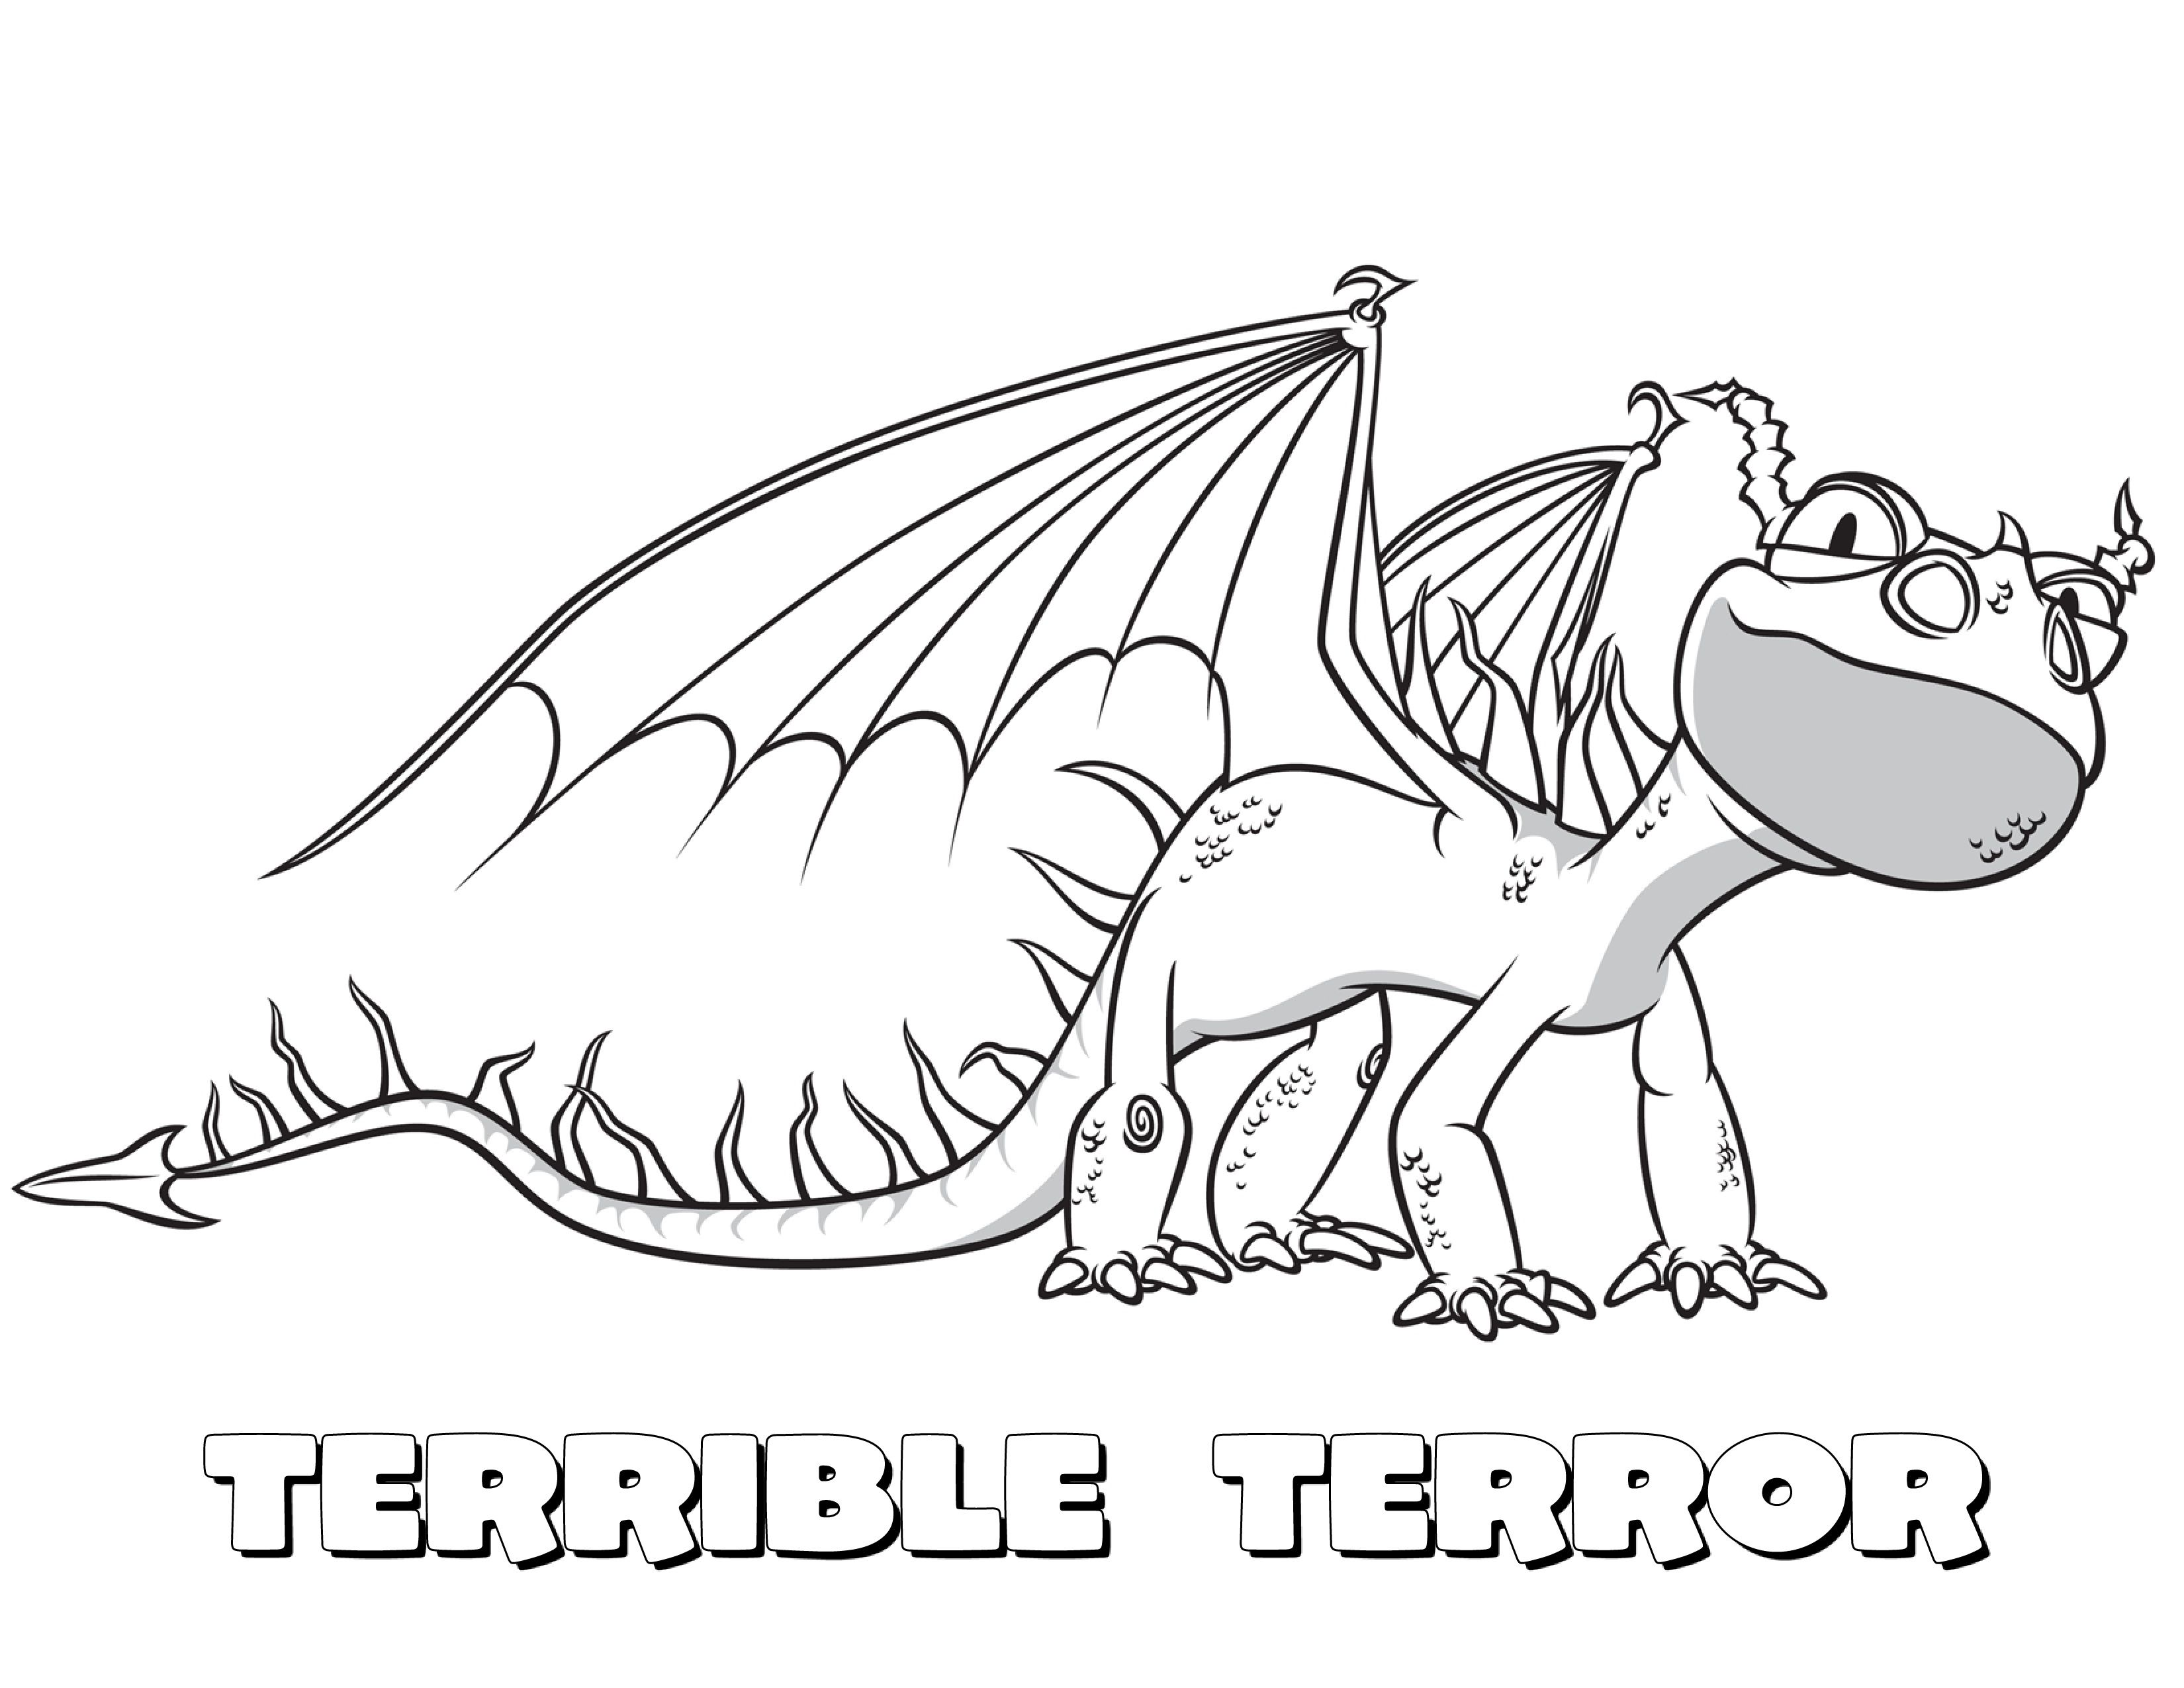 How To Train Your Dragon Coloring Page Google Keresés Coloring